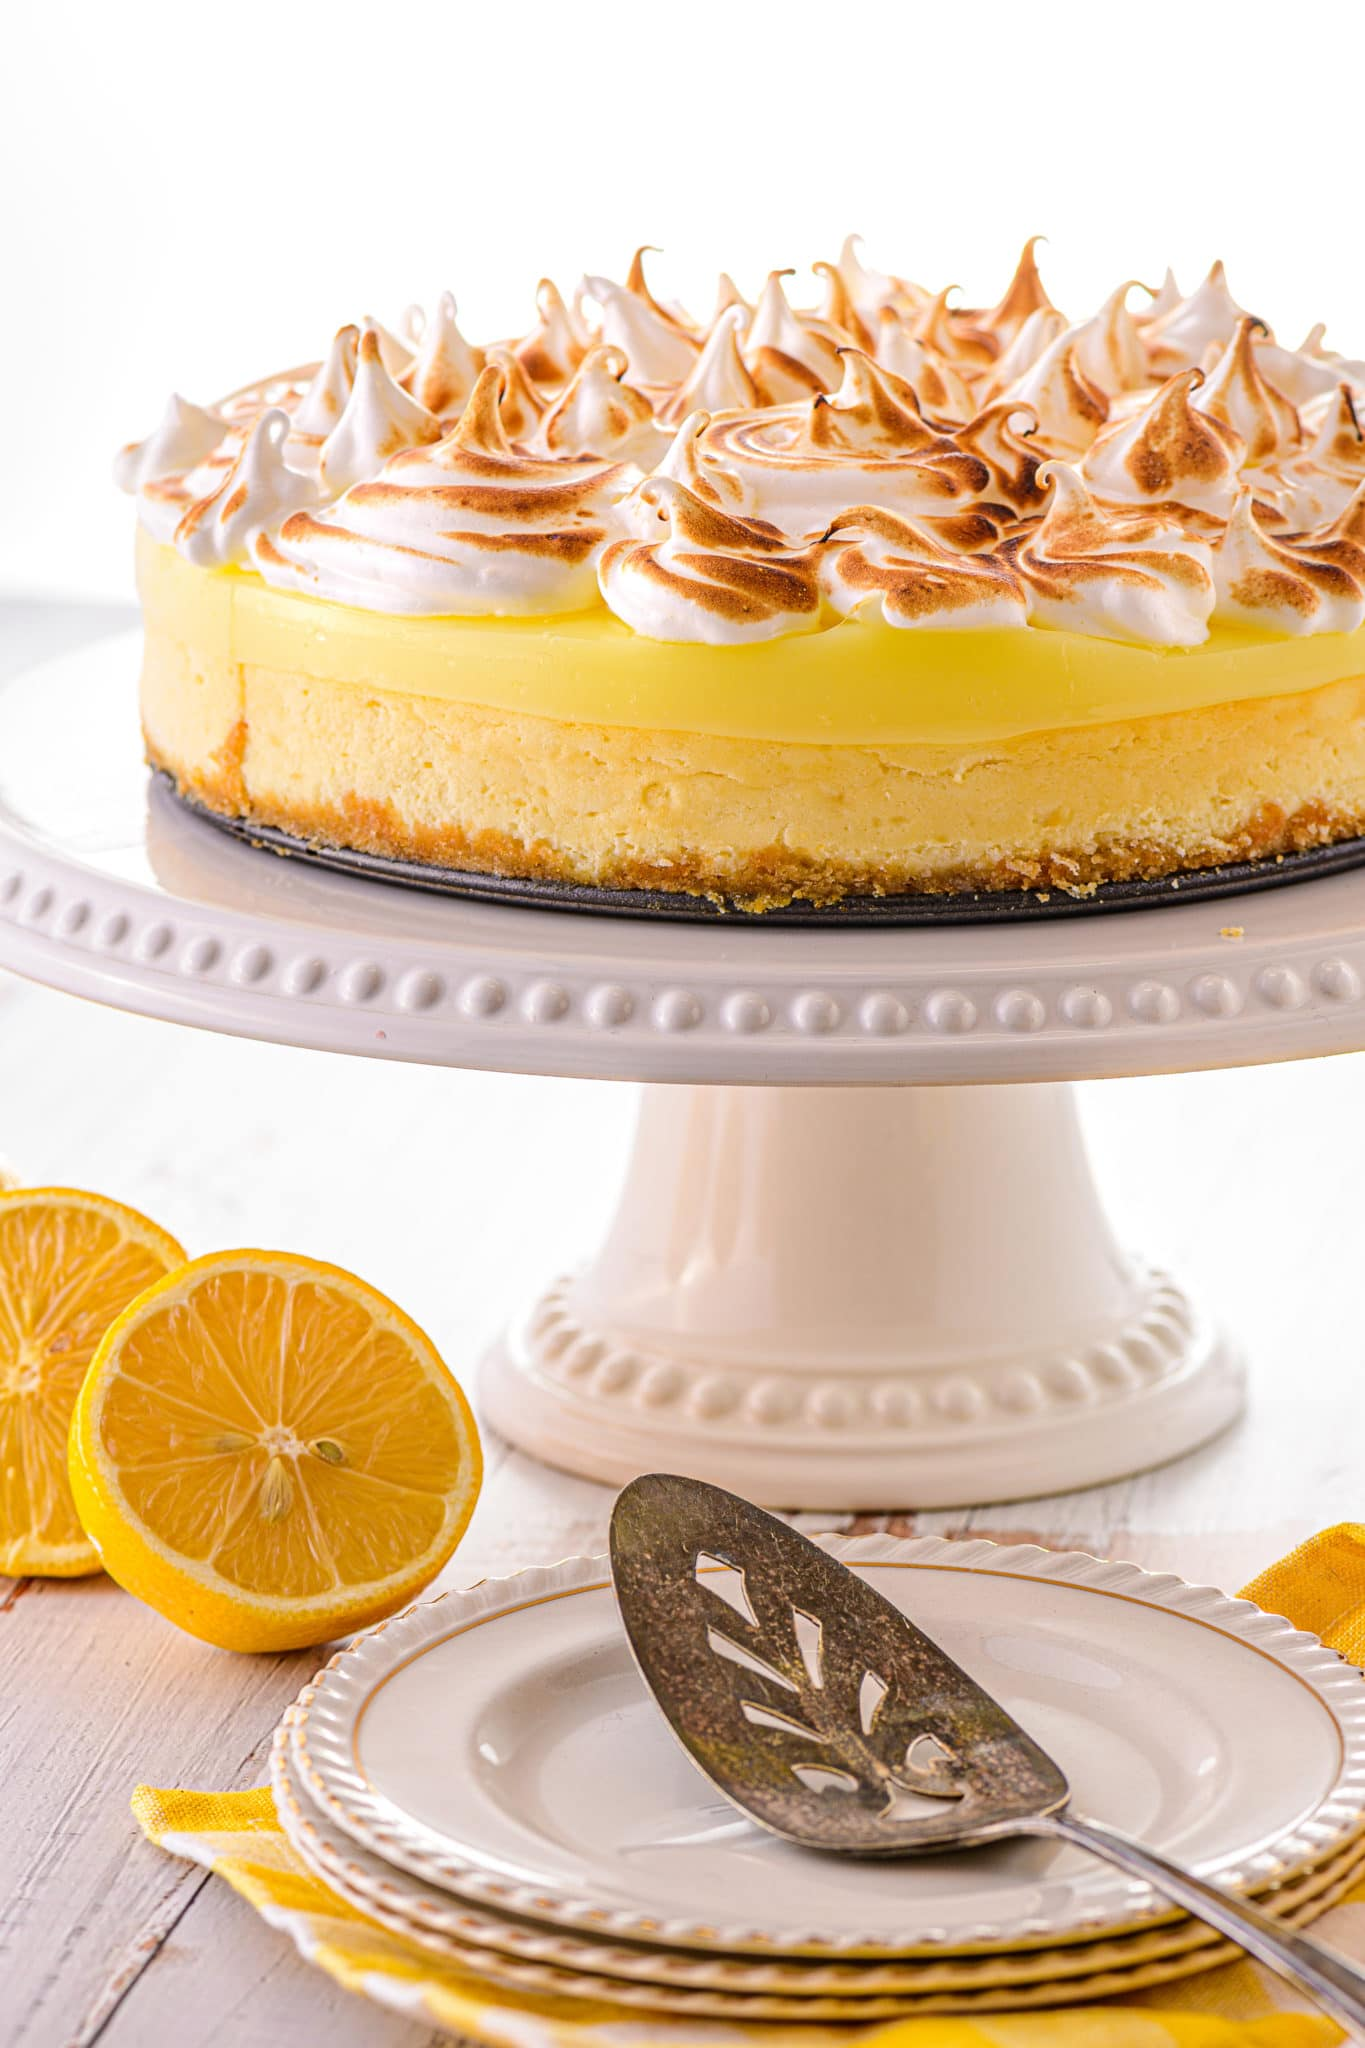 Lemon Cheesecake topped with toasted meringue on a white cake stand.